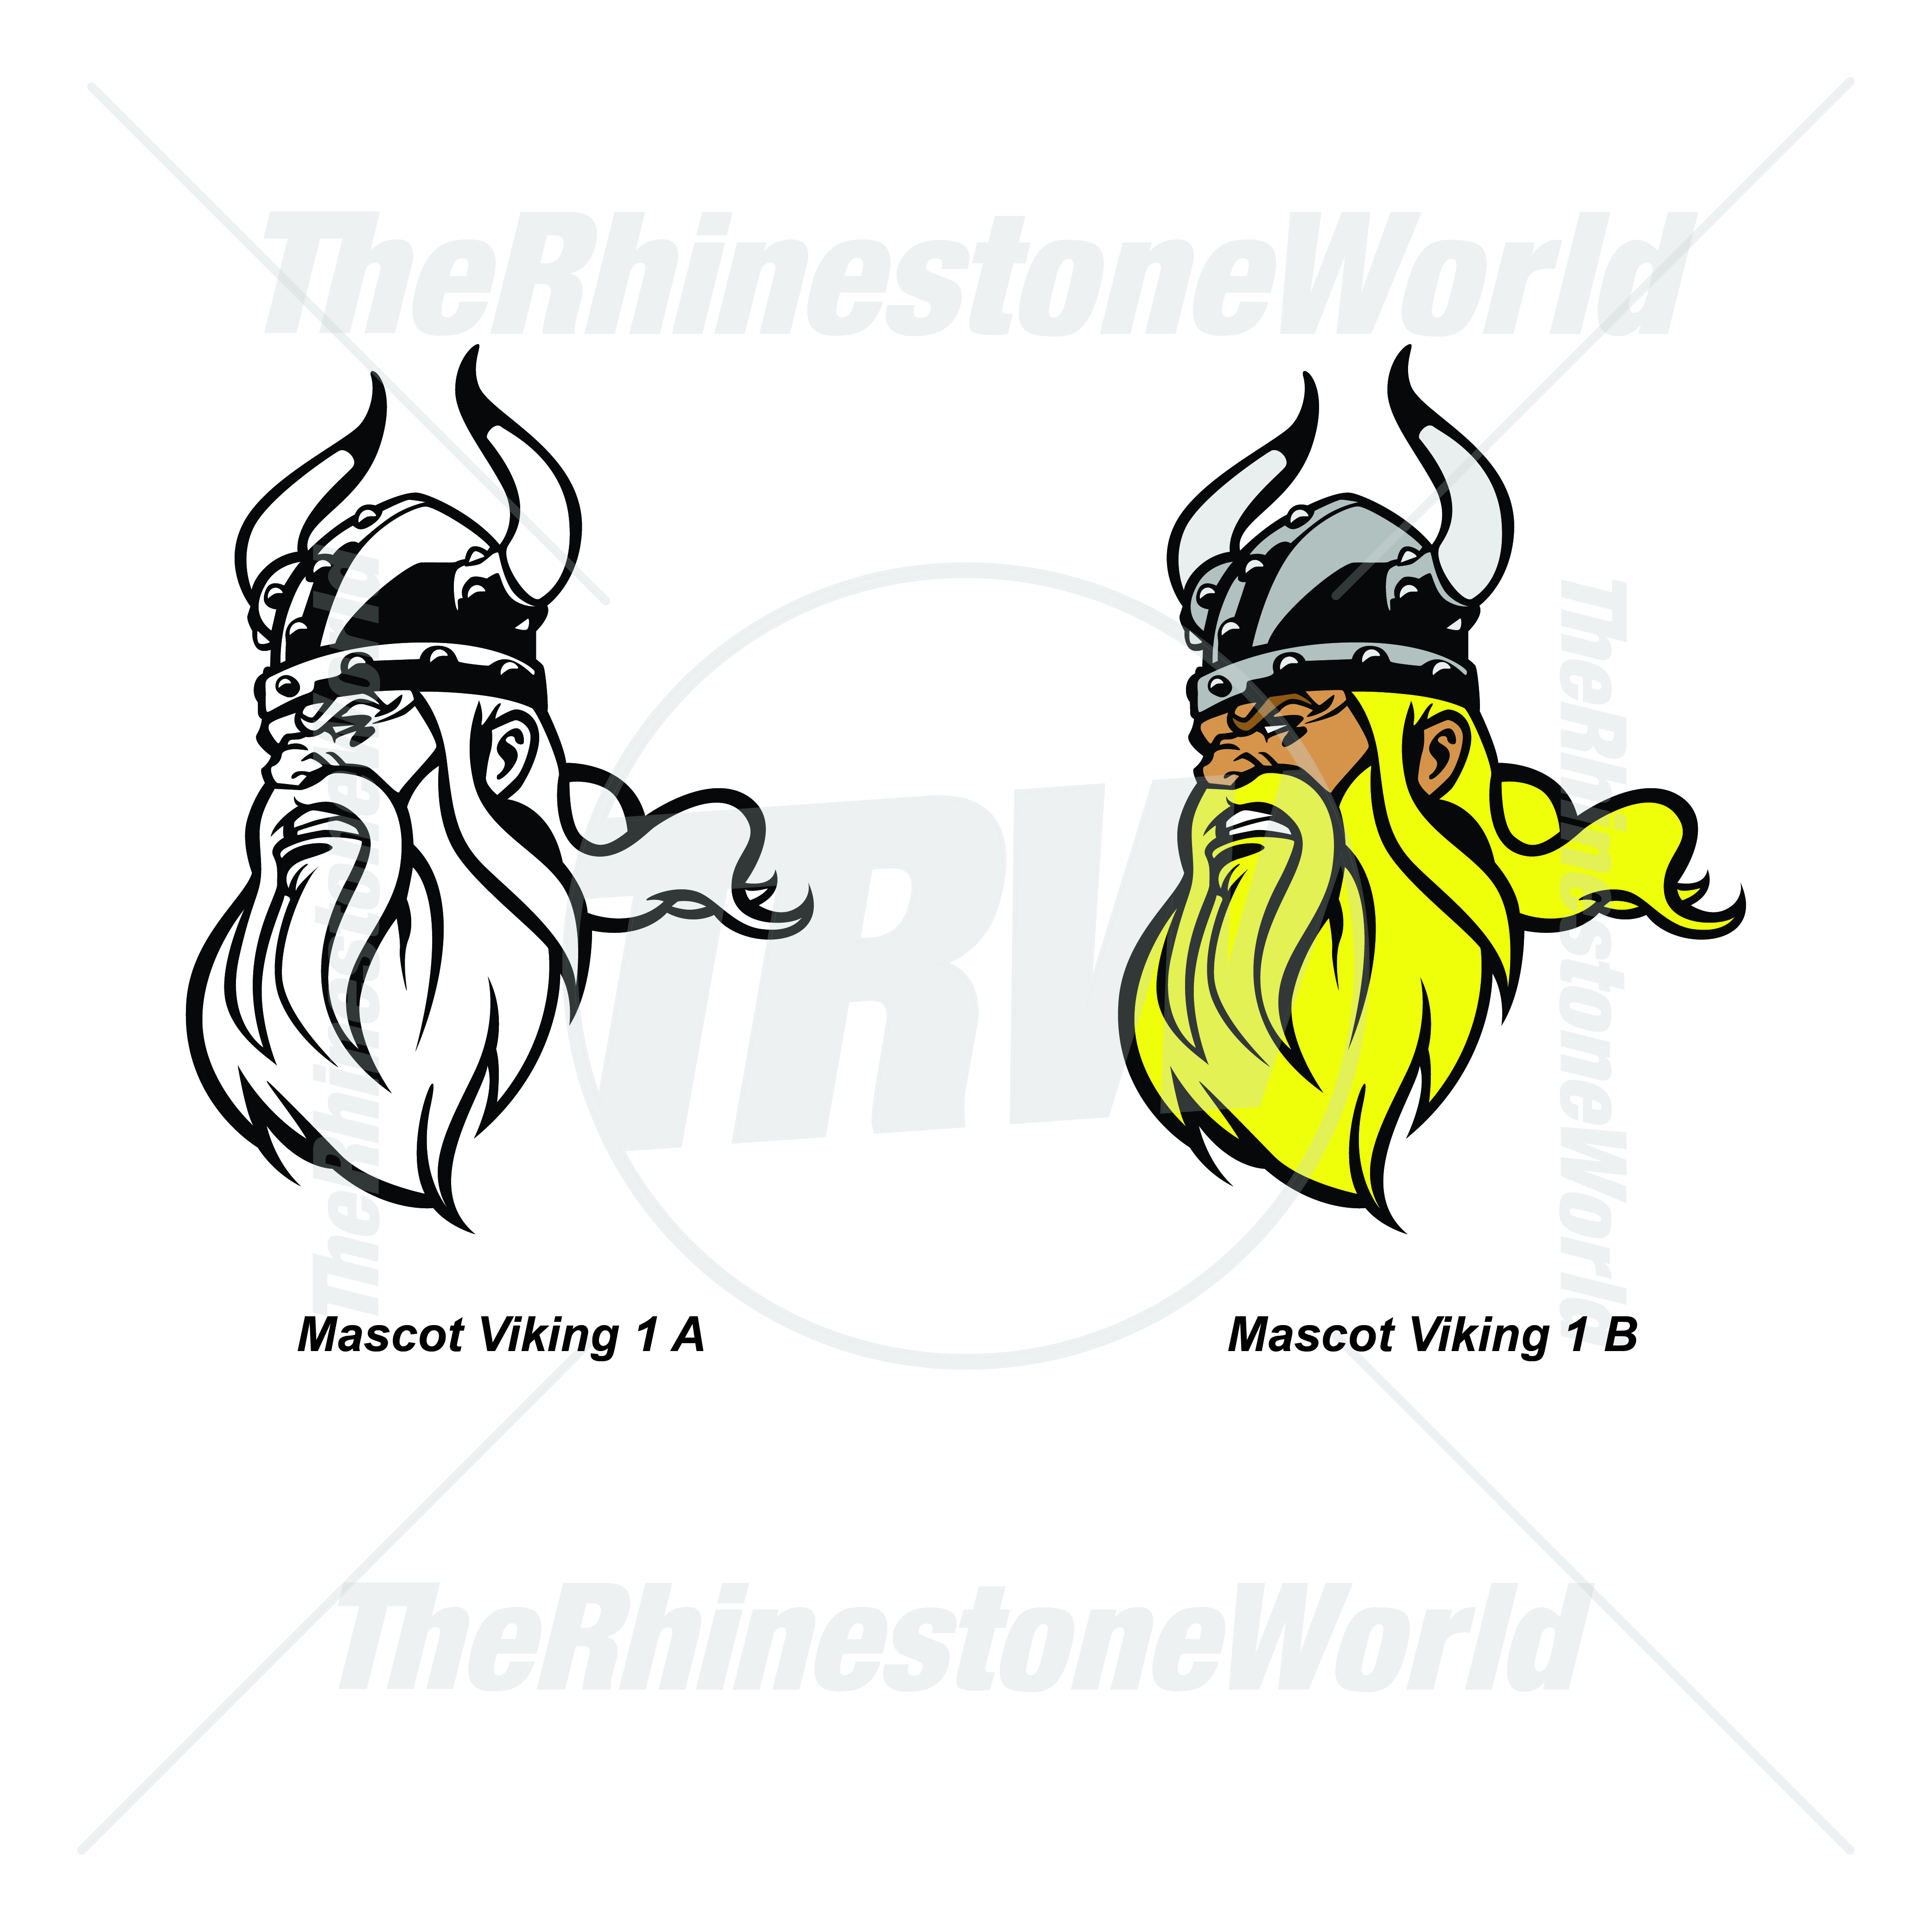 TRW Mascot Viking 1 - Download